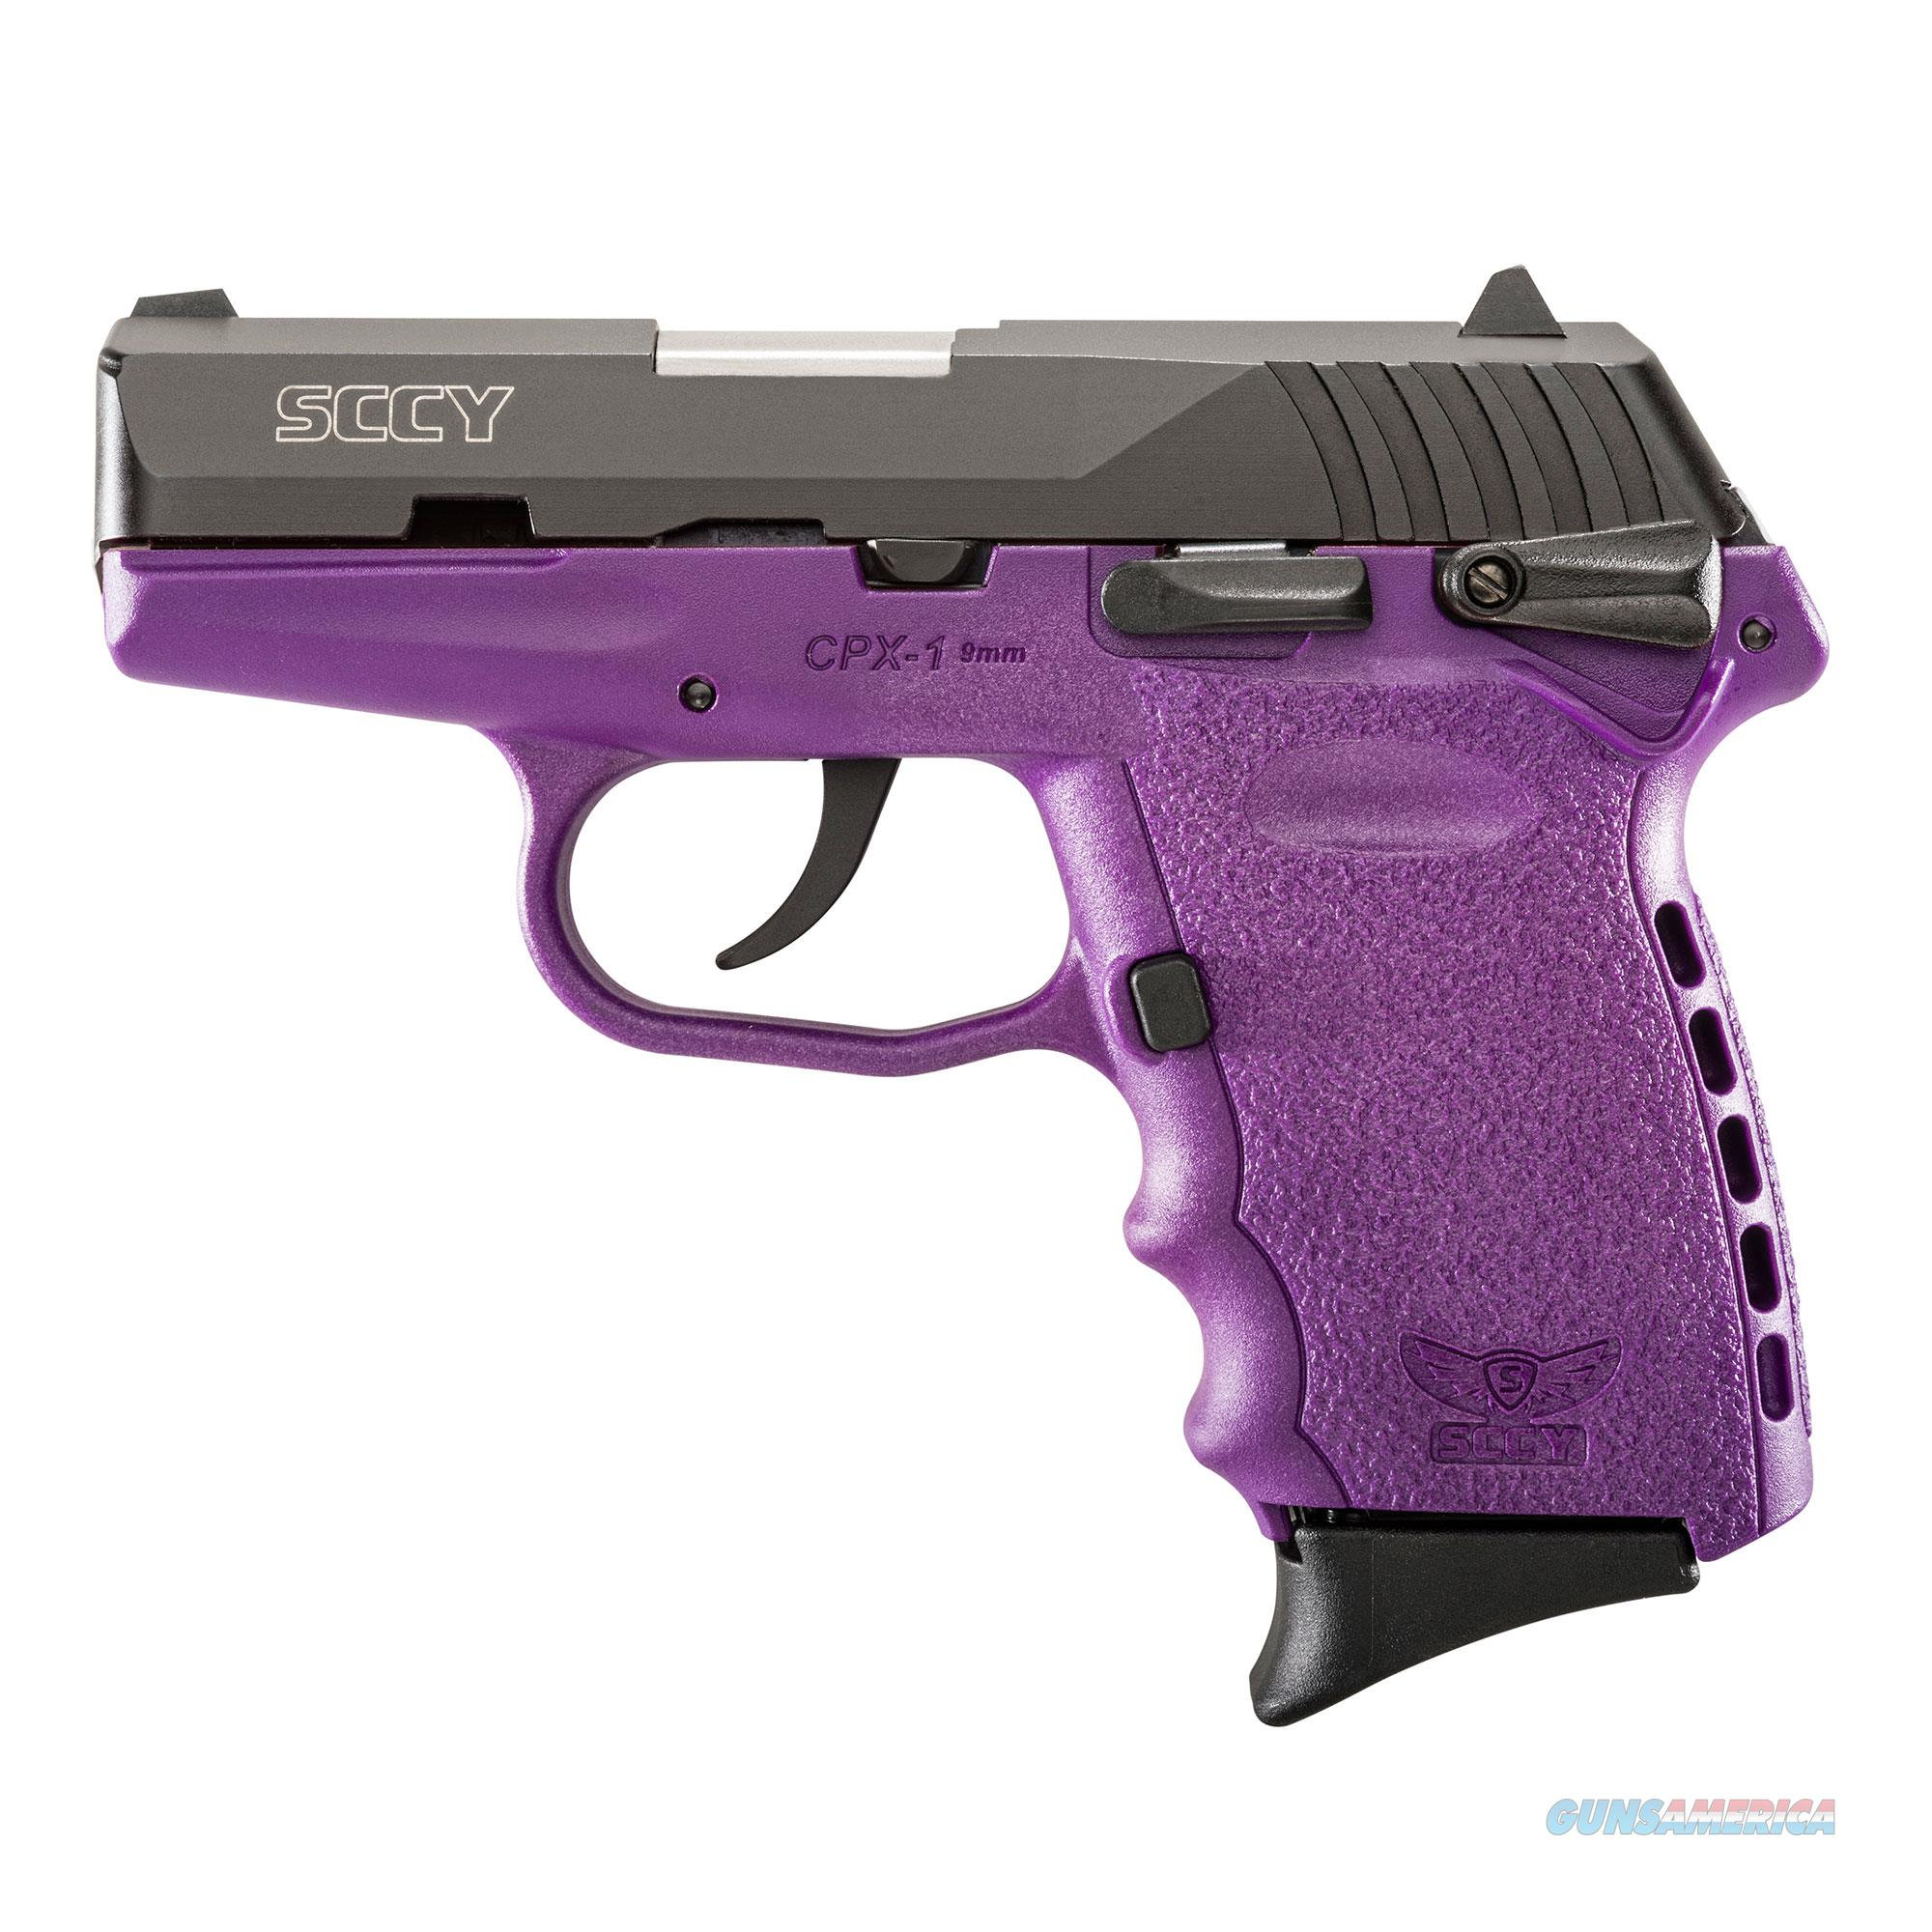 SCCY CPX-1 9MM MATTE / PURPLE 10 +1 CAPACITY NEW IN BOX  Guns > Pistols > SCCY Pistols > CPX1